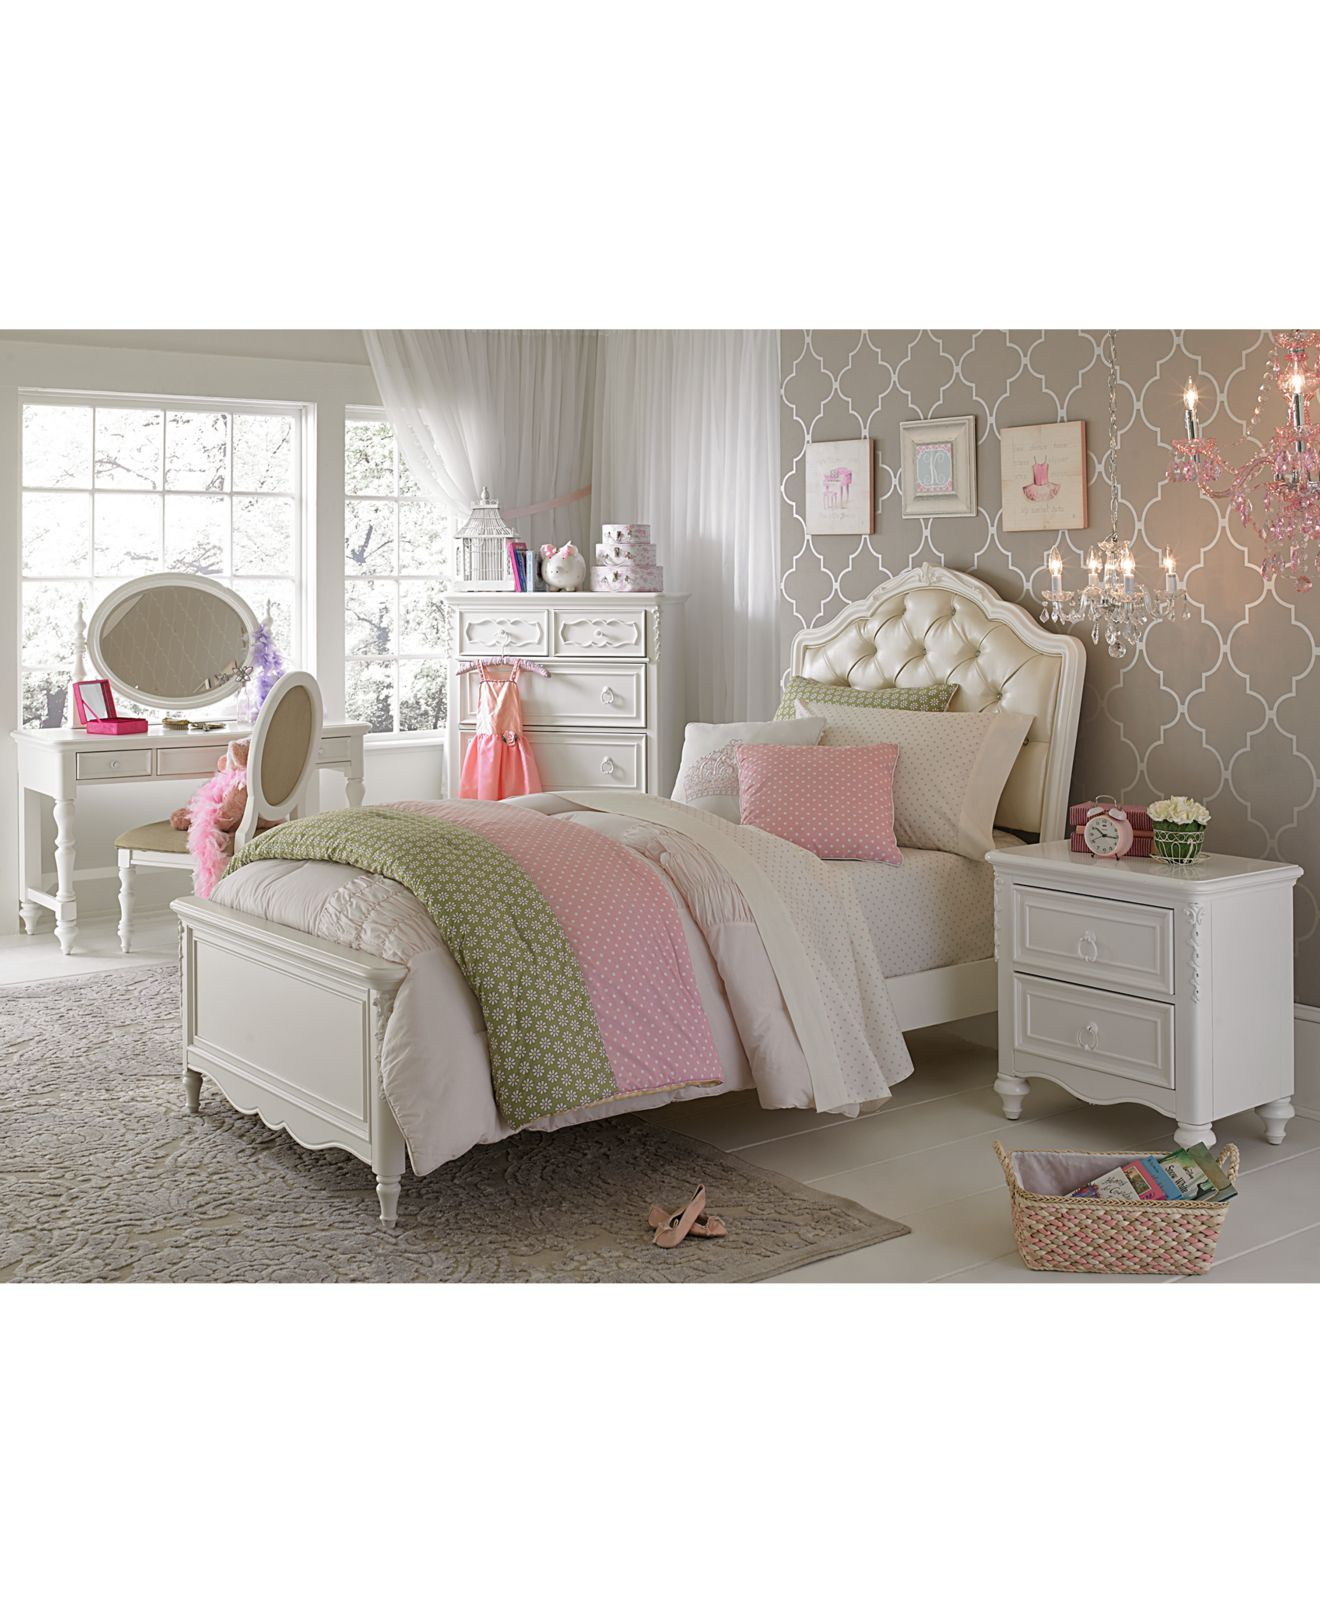 Kids & Baby Nursery Furniture Macy s